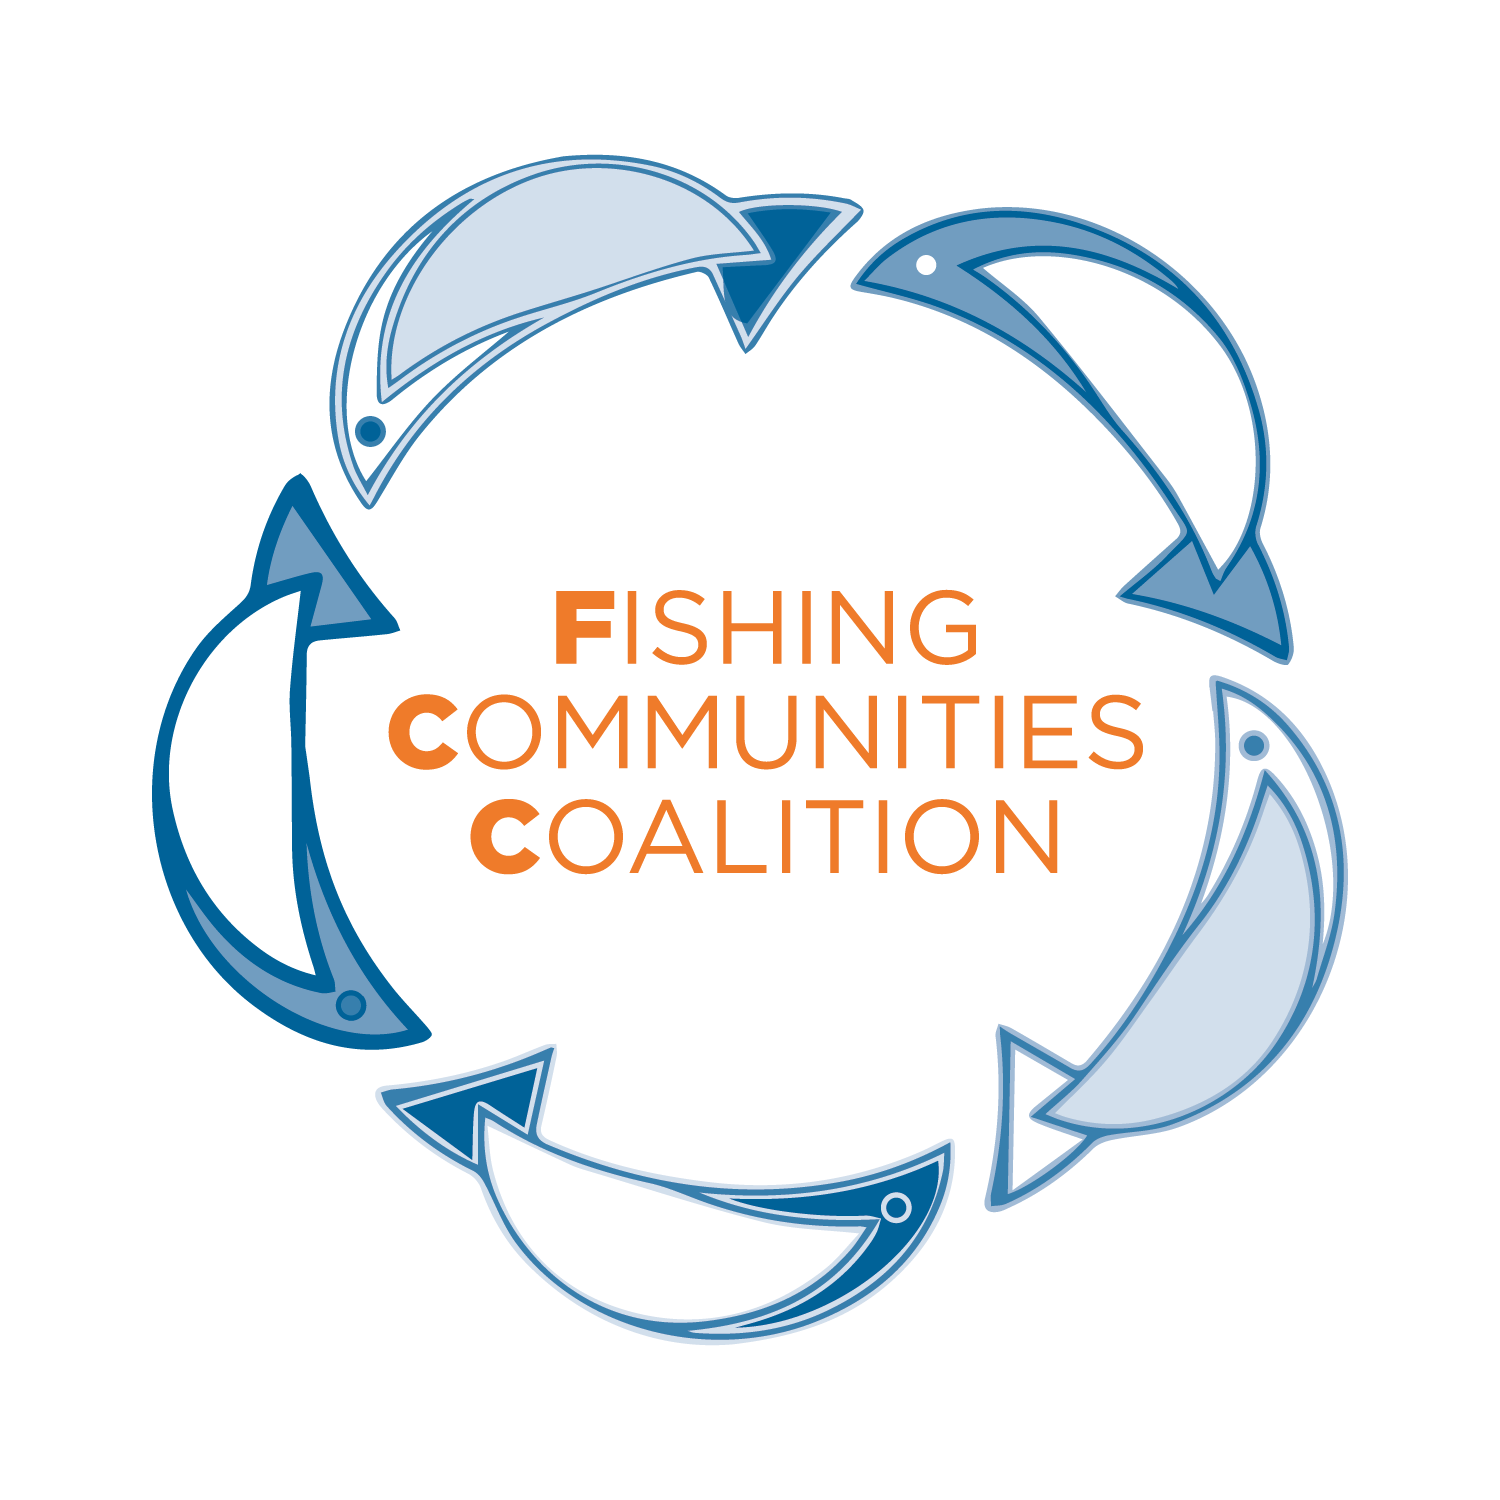 Fishing Communities Coalition